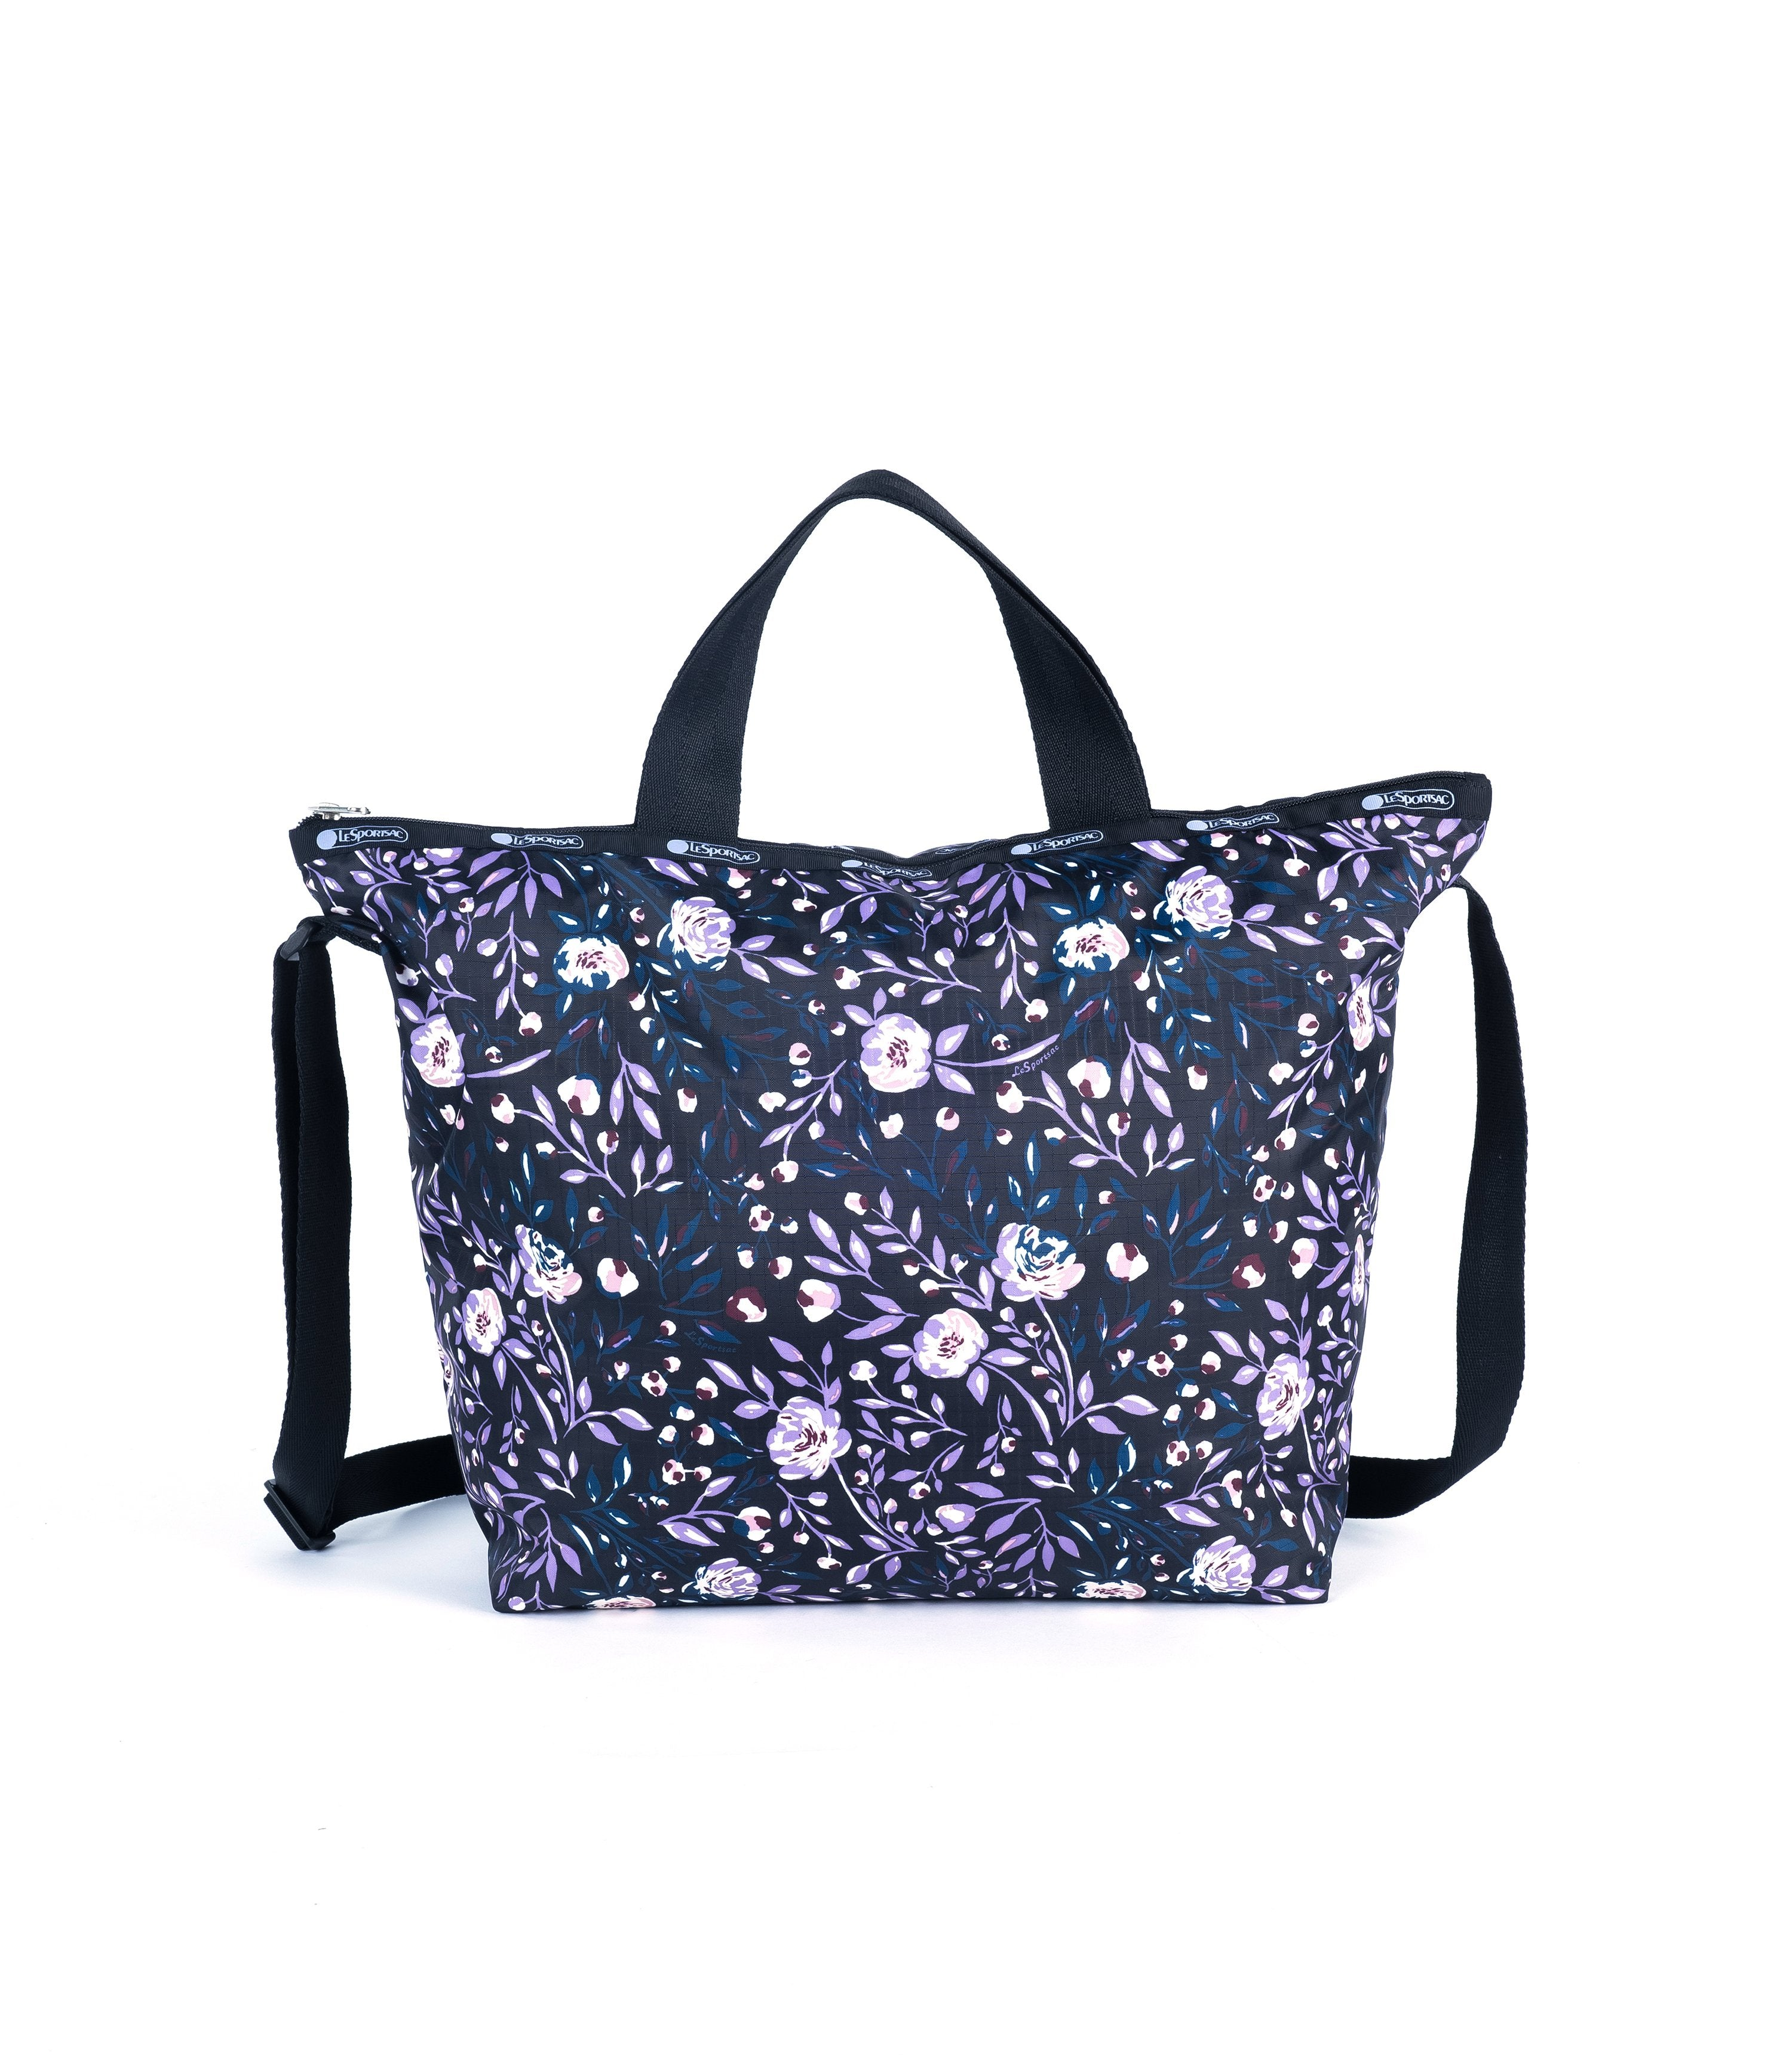 LeSportsac - Deluxe Easy Carry Tote - Totes - Dancing Roses Noir print